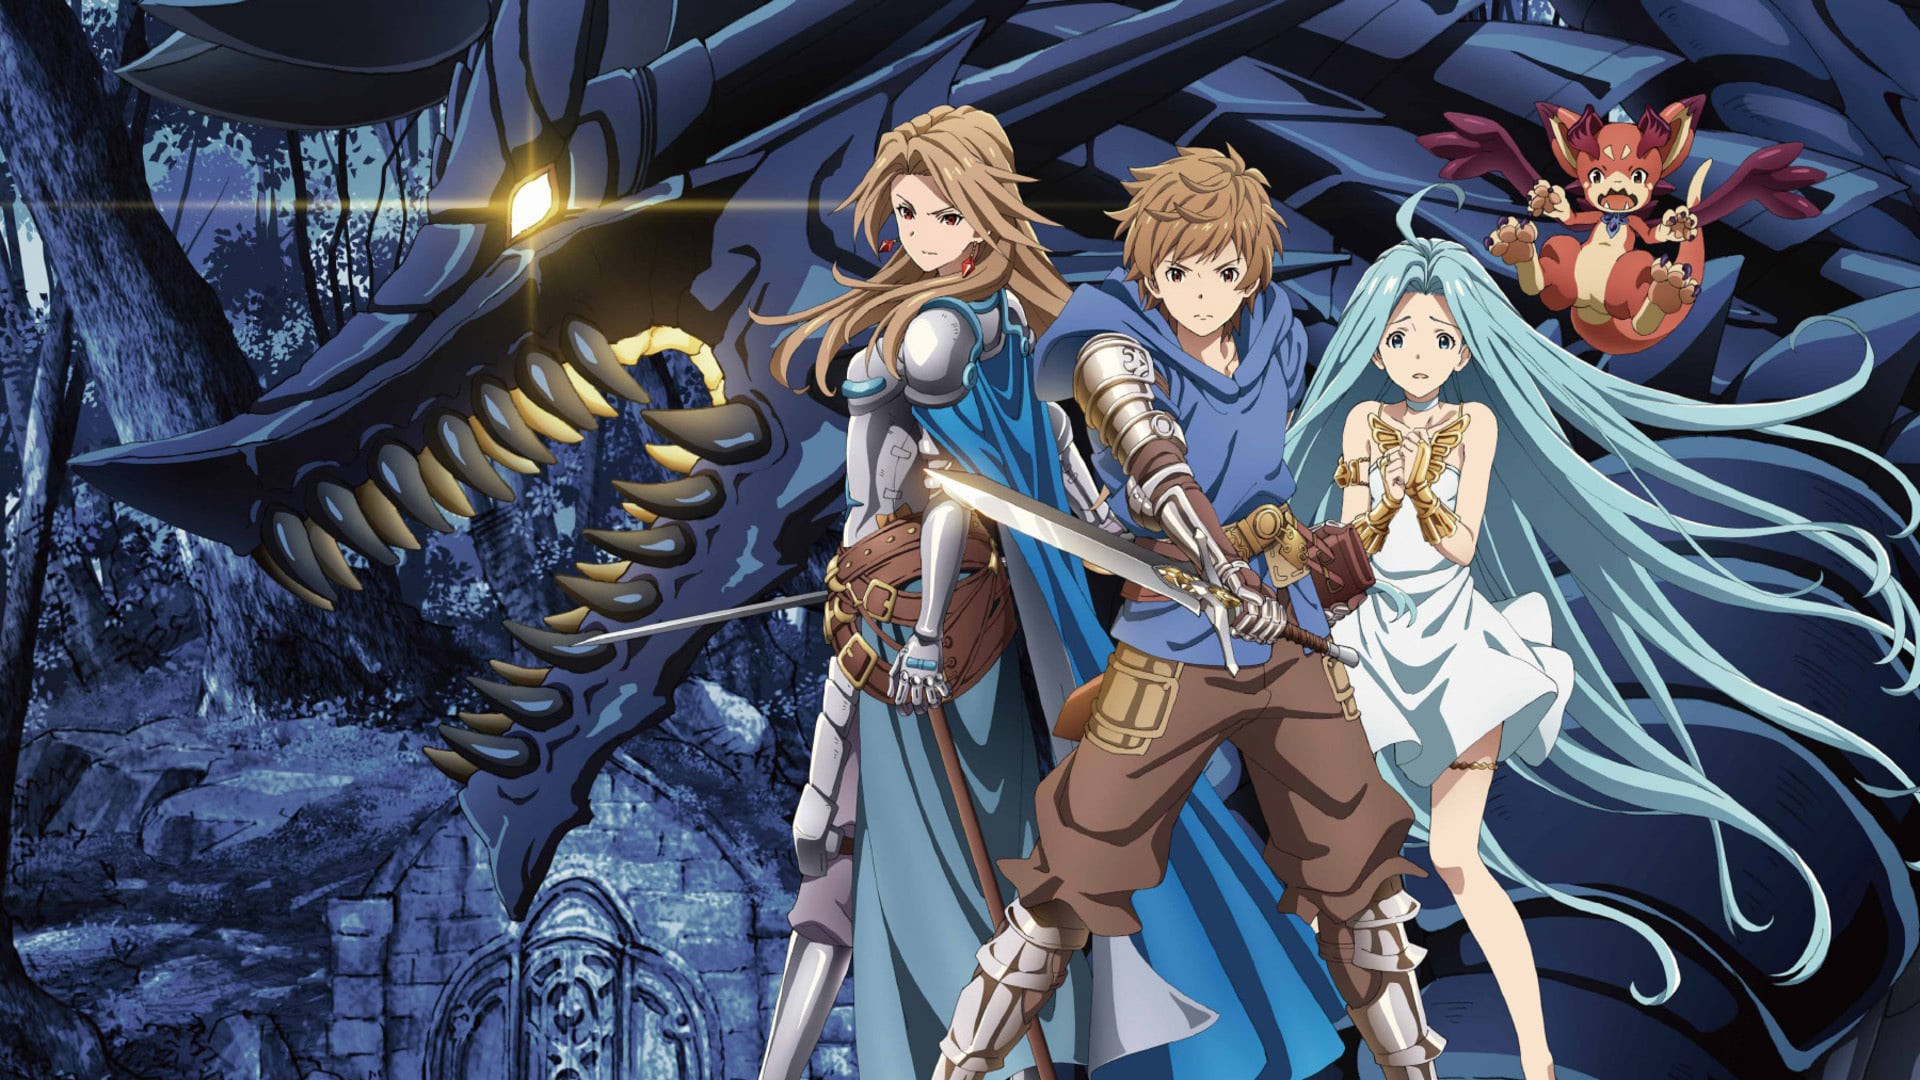 Granblue Fantasy: The Animation Season 2